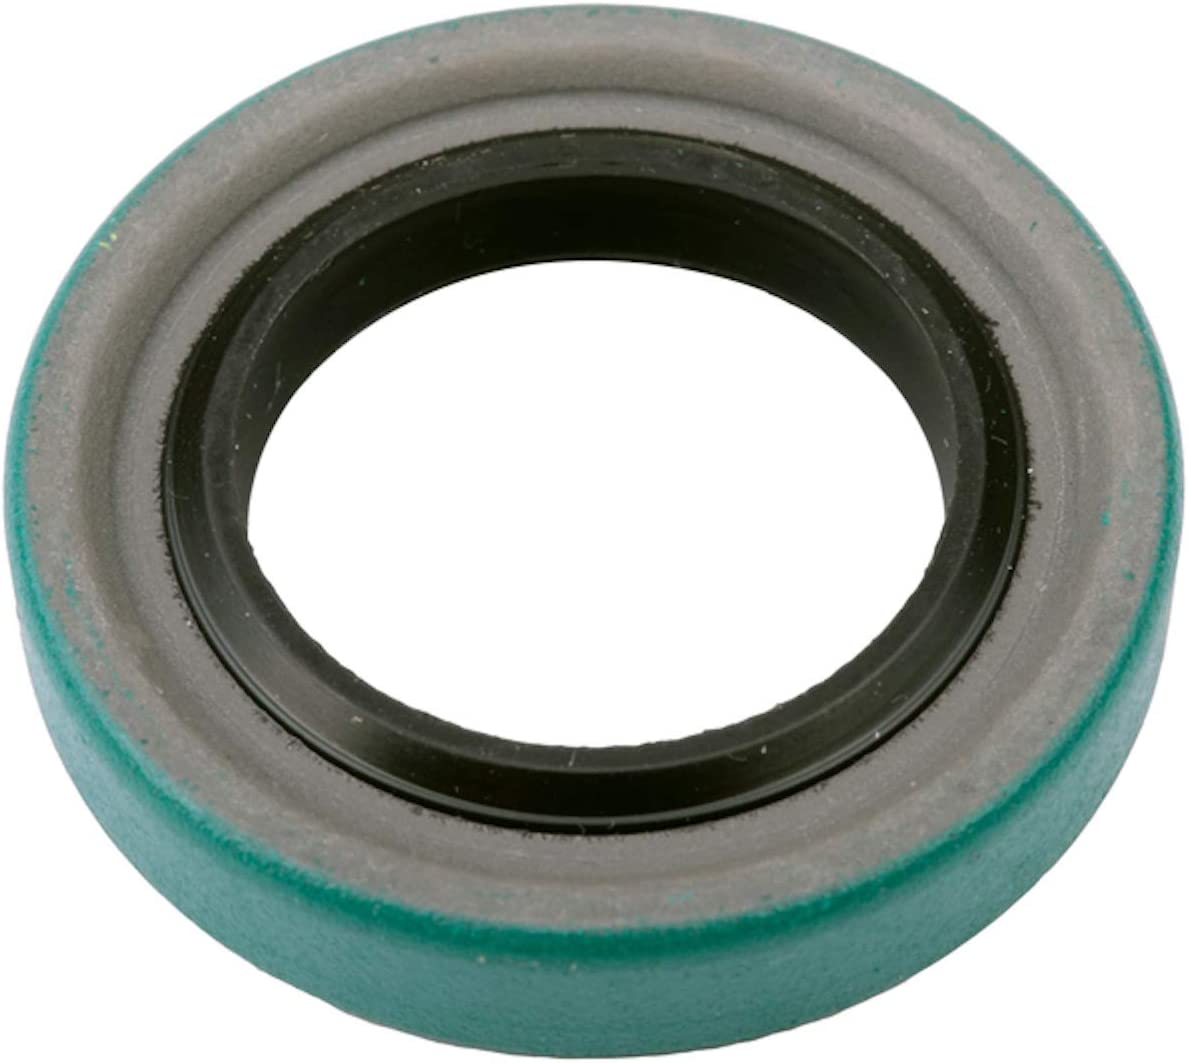 SKF 8660 Steering Gear Worm Shaft Seal